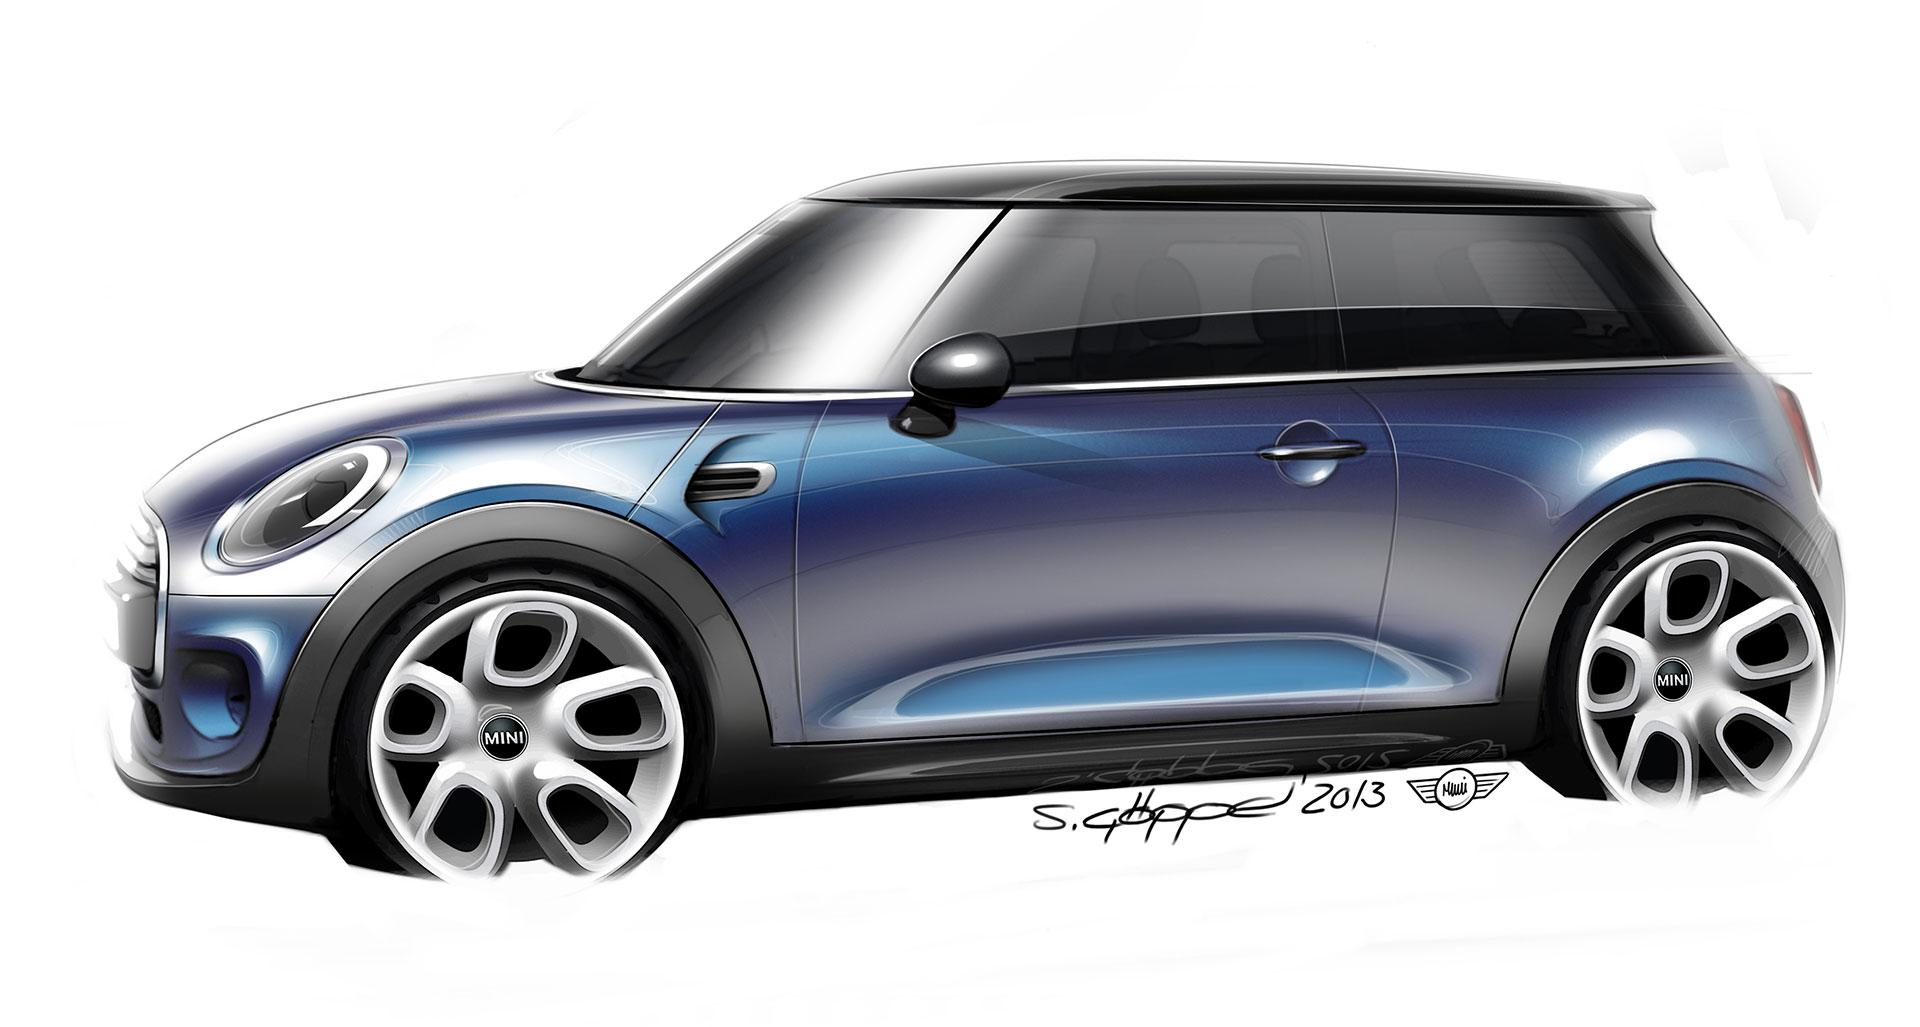 The new MINI - Design Sketch - Car Body Design #338209 on Wookmark